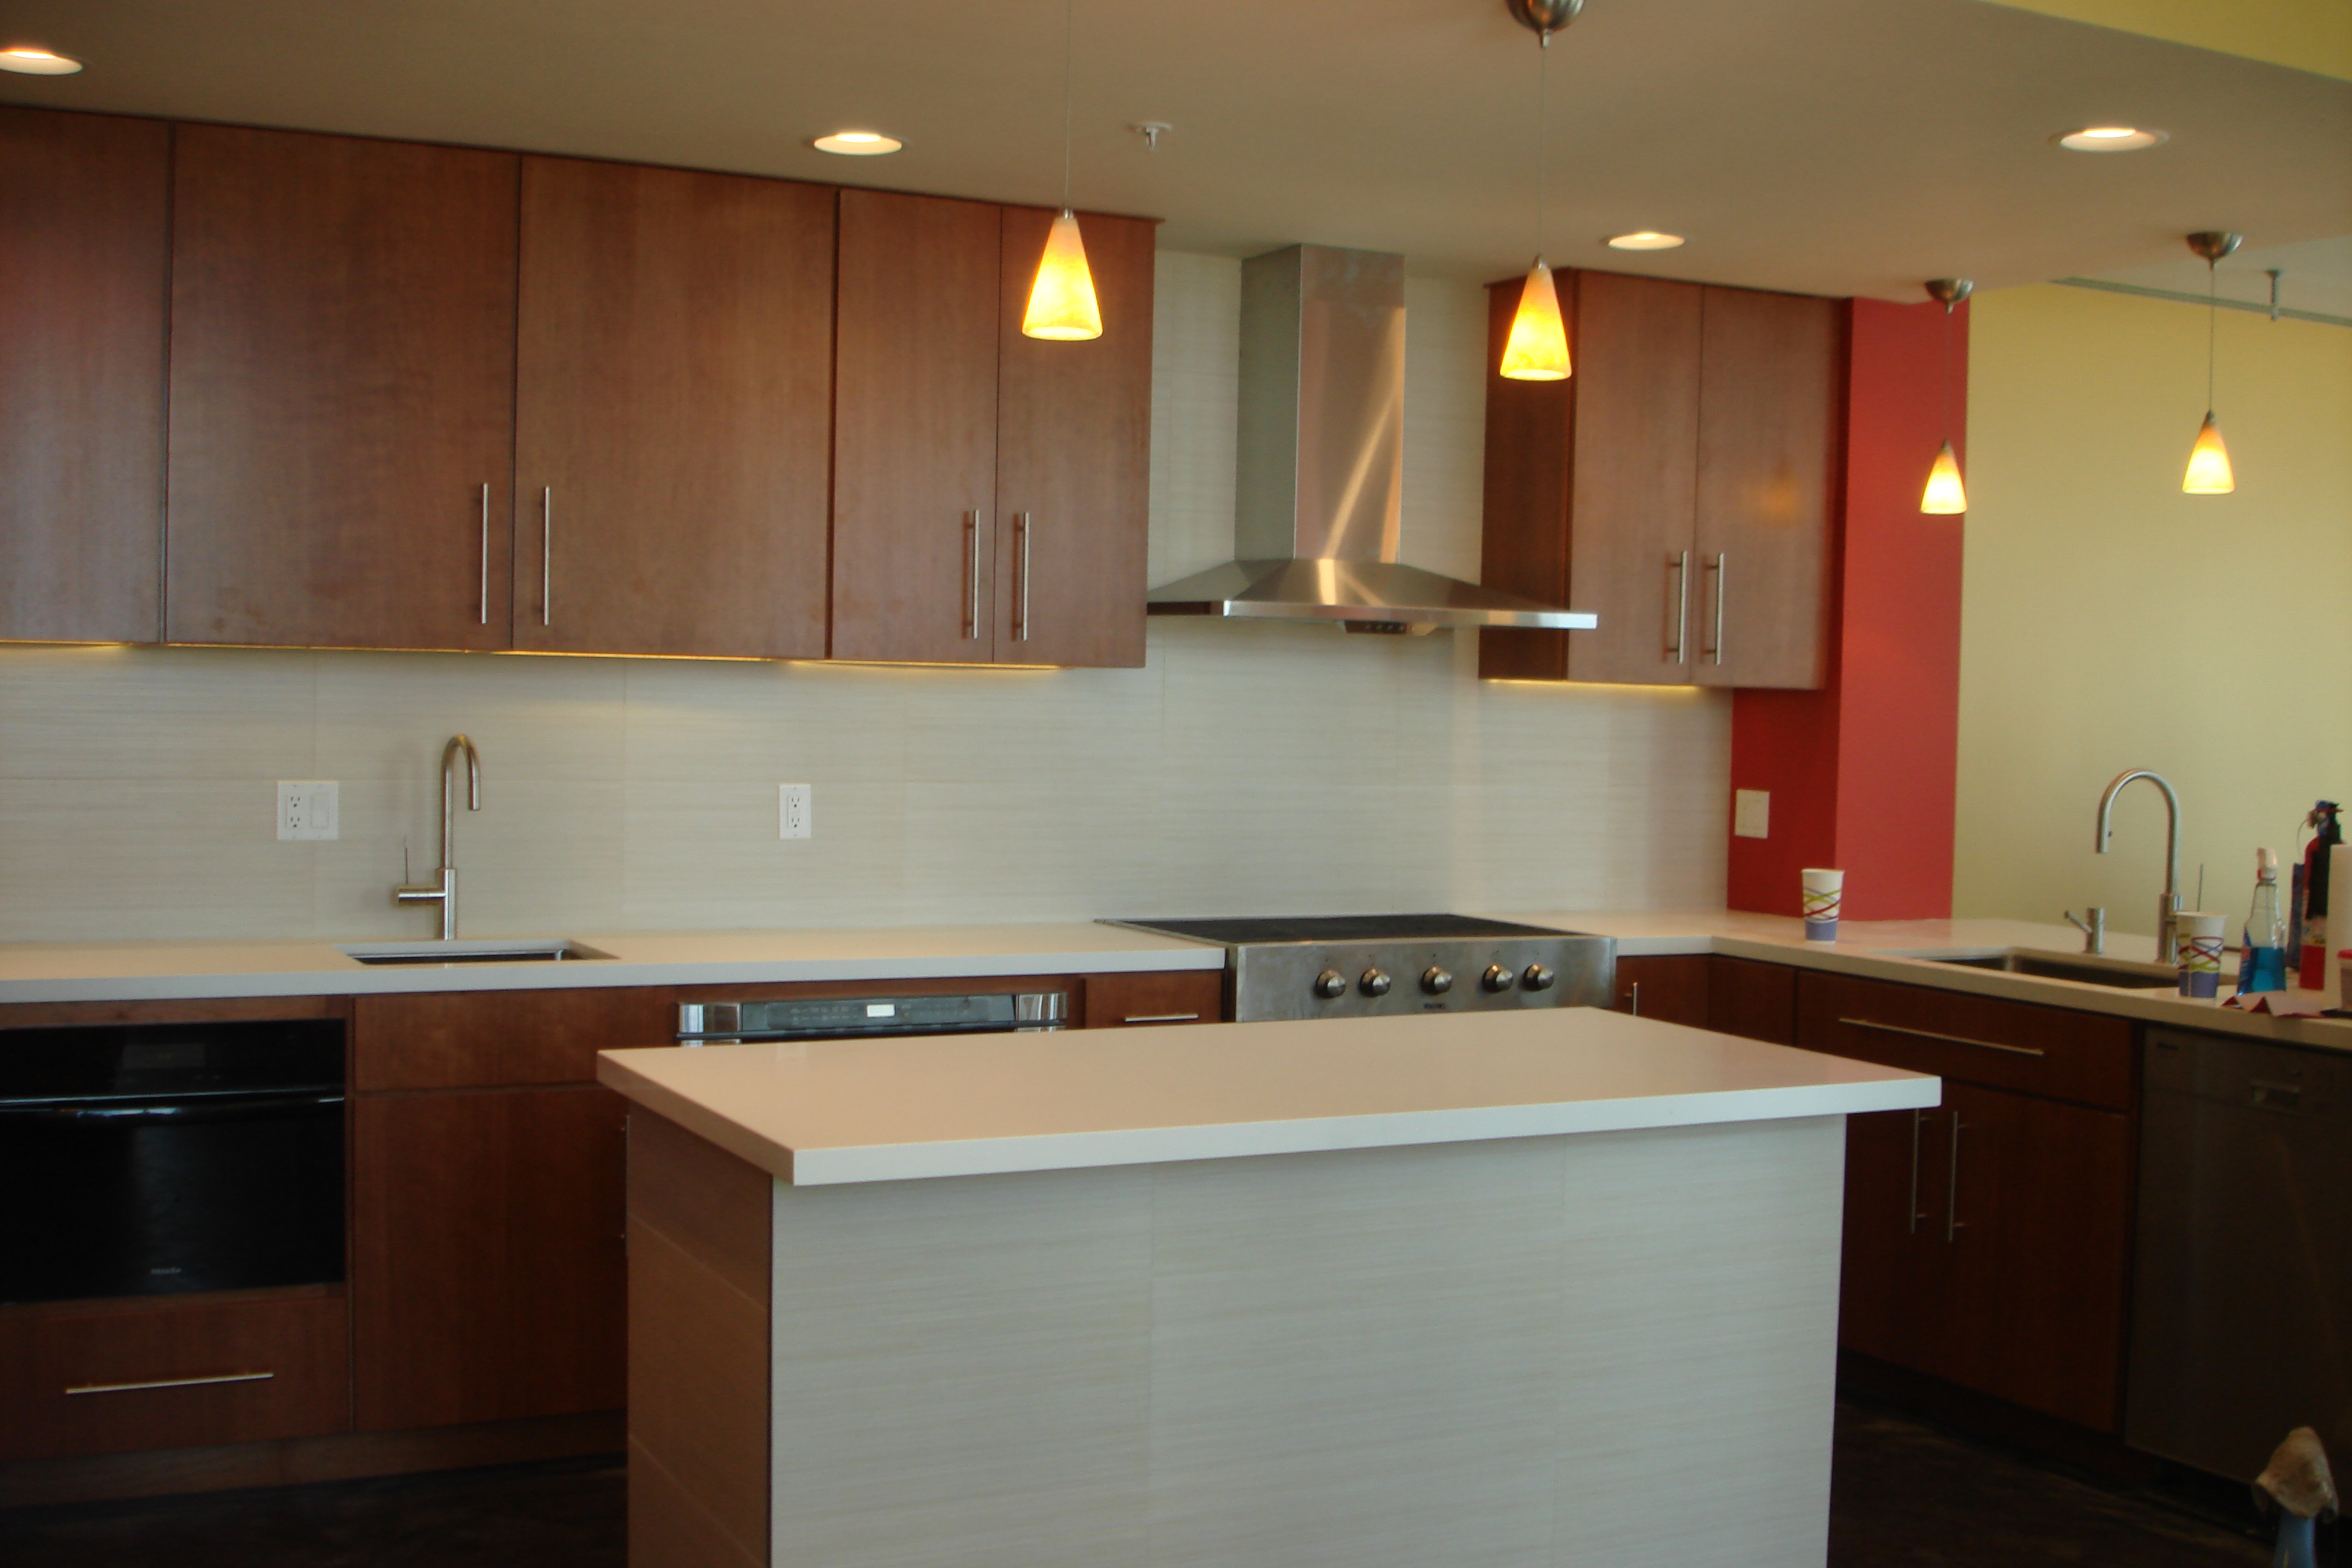 Kitchen Remodeling San Diego Bathroom Remodeling Buildem Inc - Bathroom remodel san diego